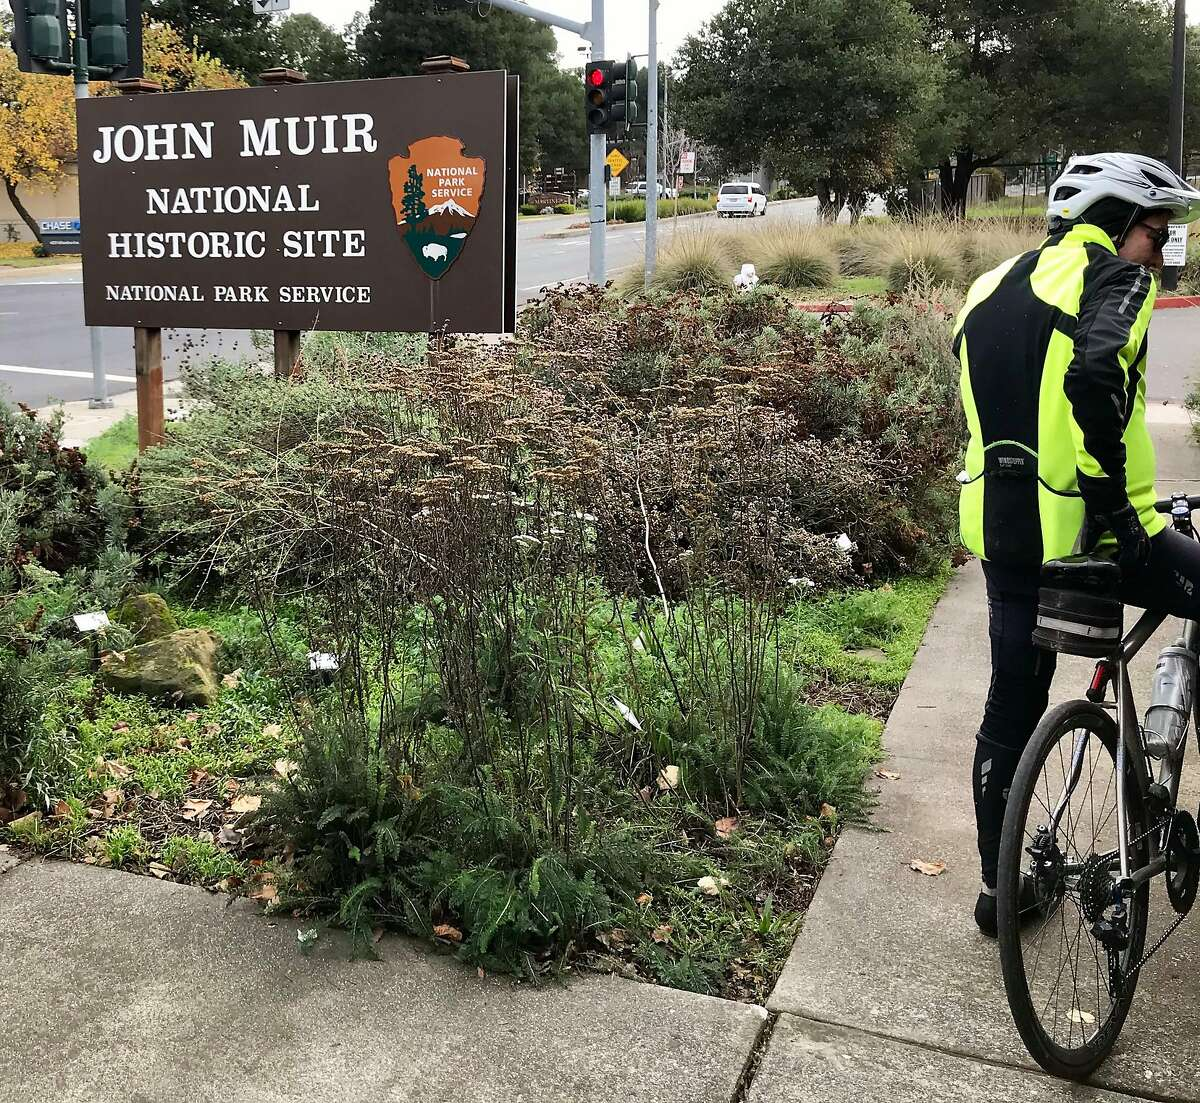 Bicyclist Len Goldschmidt pedals away after finding he can't get into John Muir National Historic Site In Martinez on Saturday afternoon December 22, 2018. Steve Rubenstein/The Chronicle